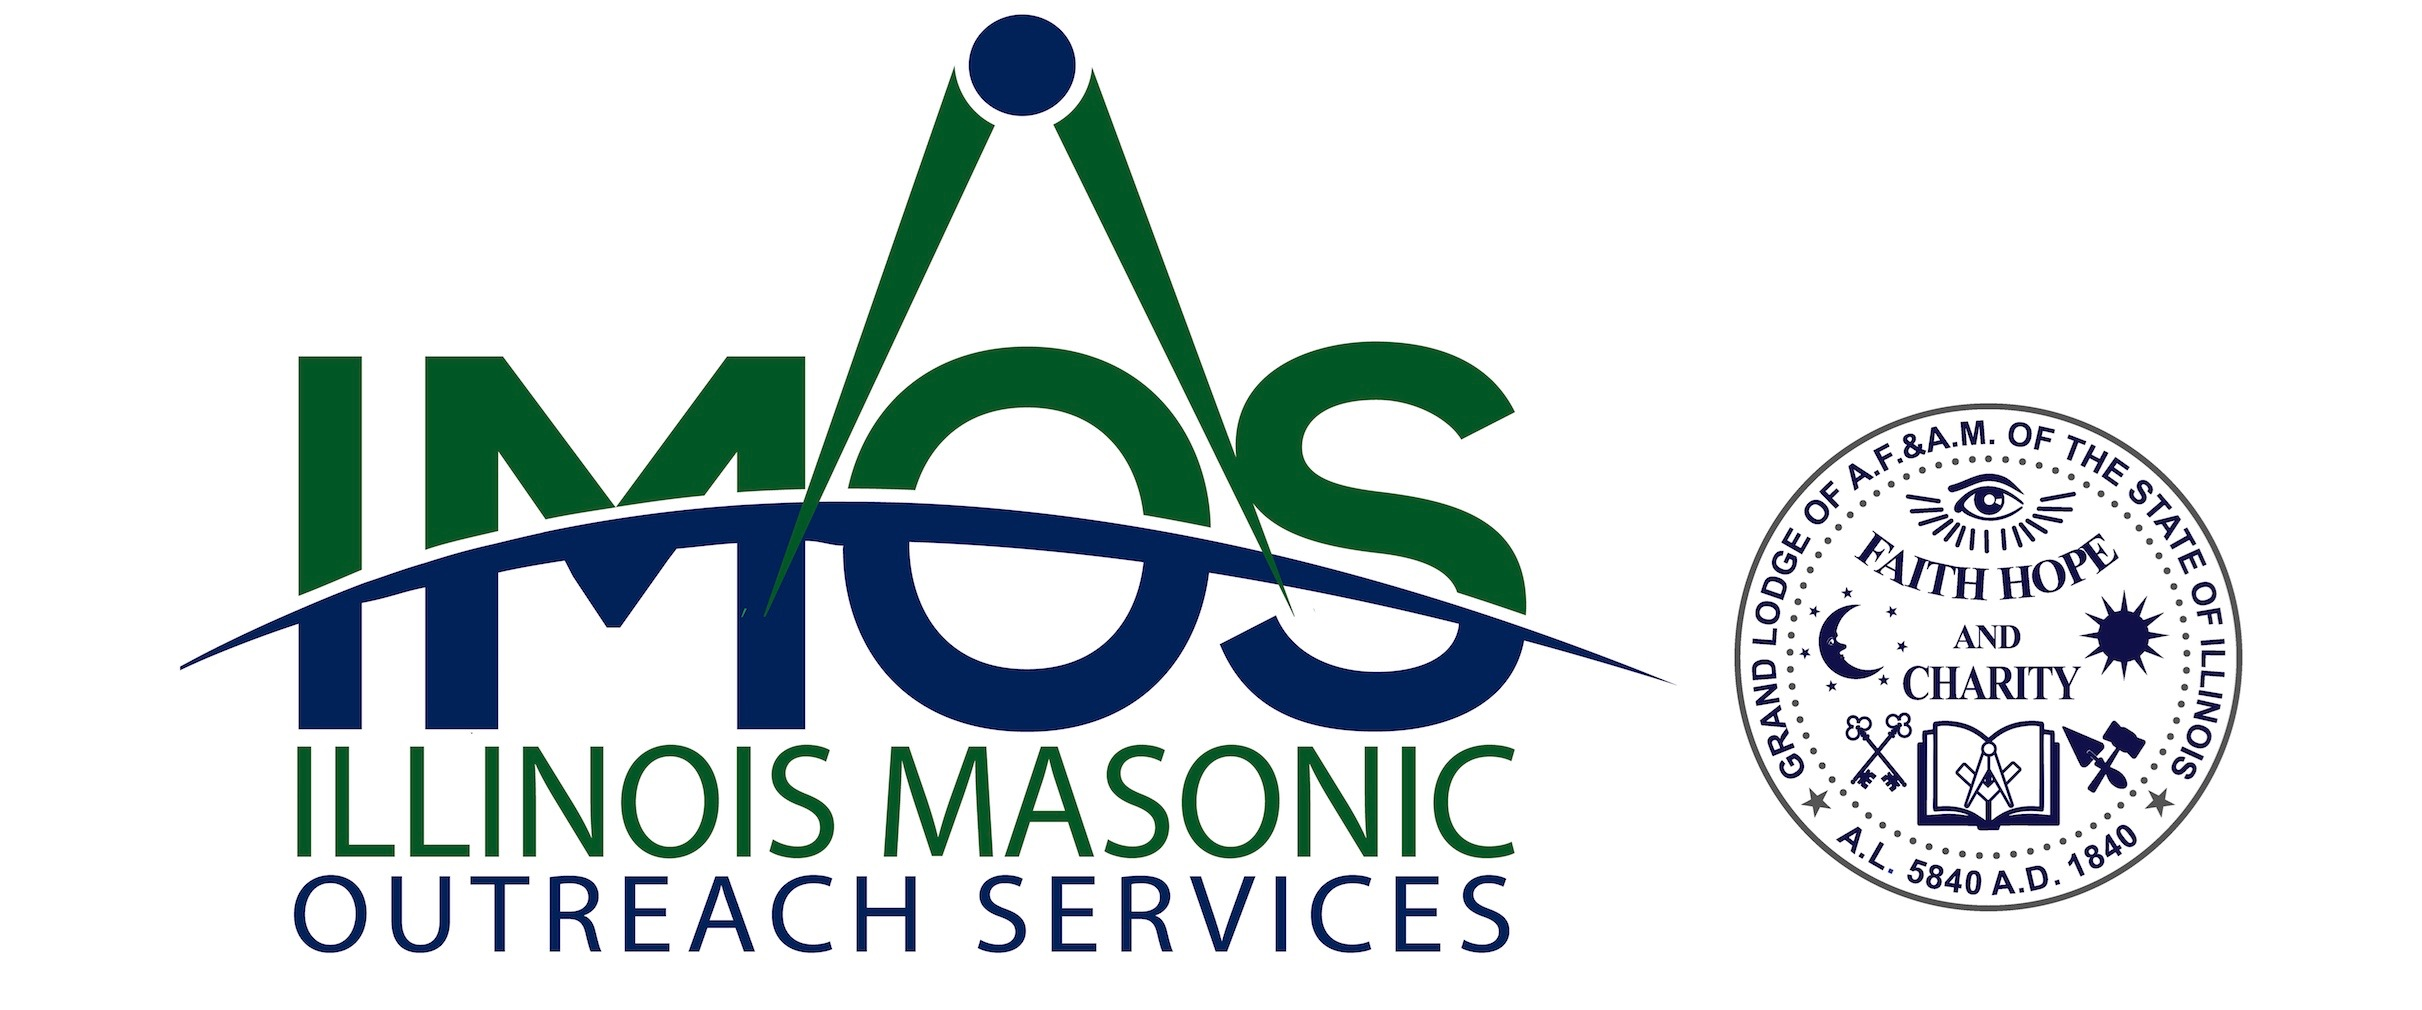 Screen Shot 2019-01-13 at 9.06.17 PM.jpg